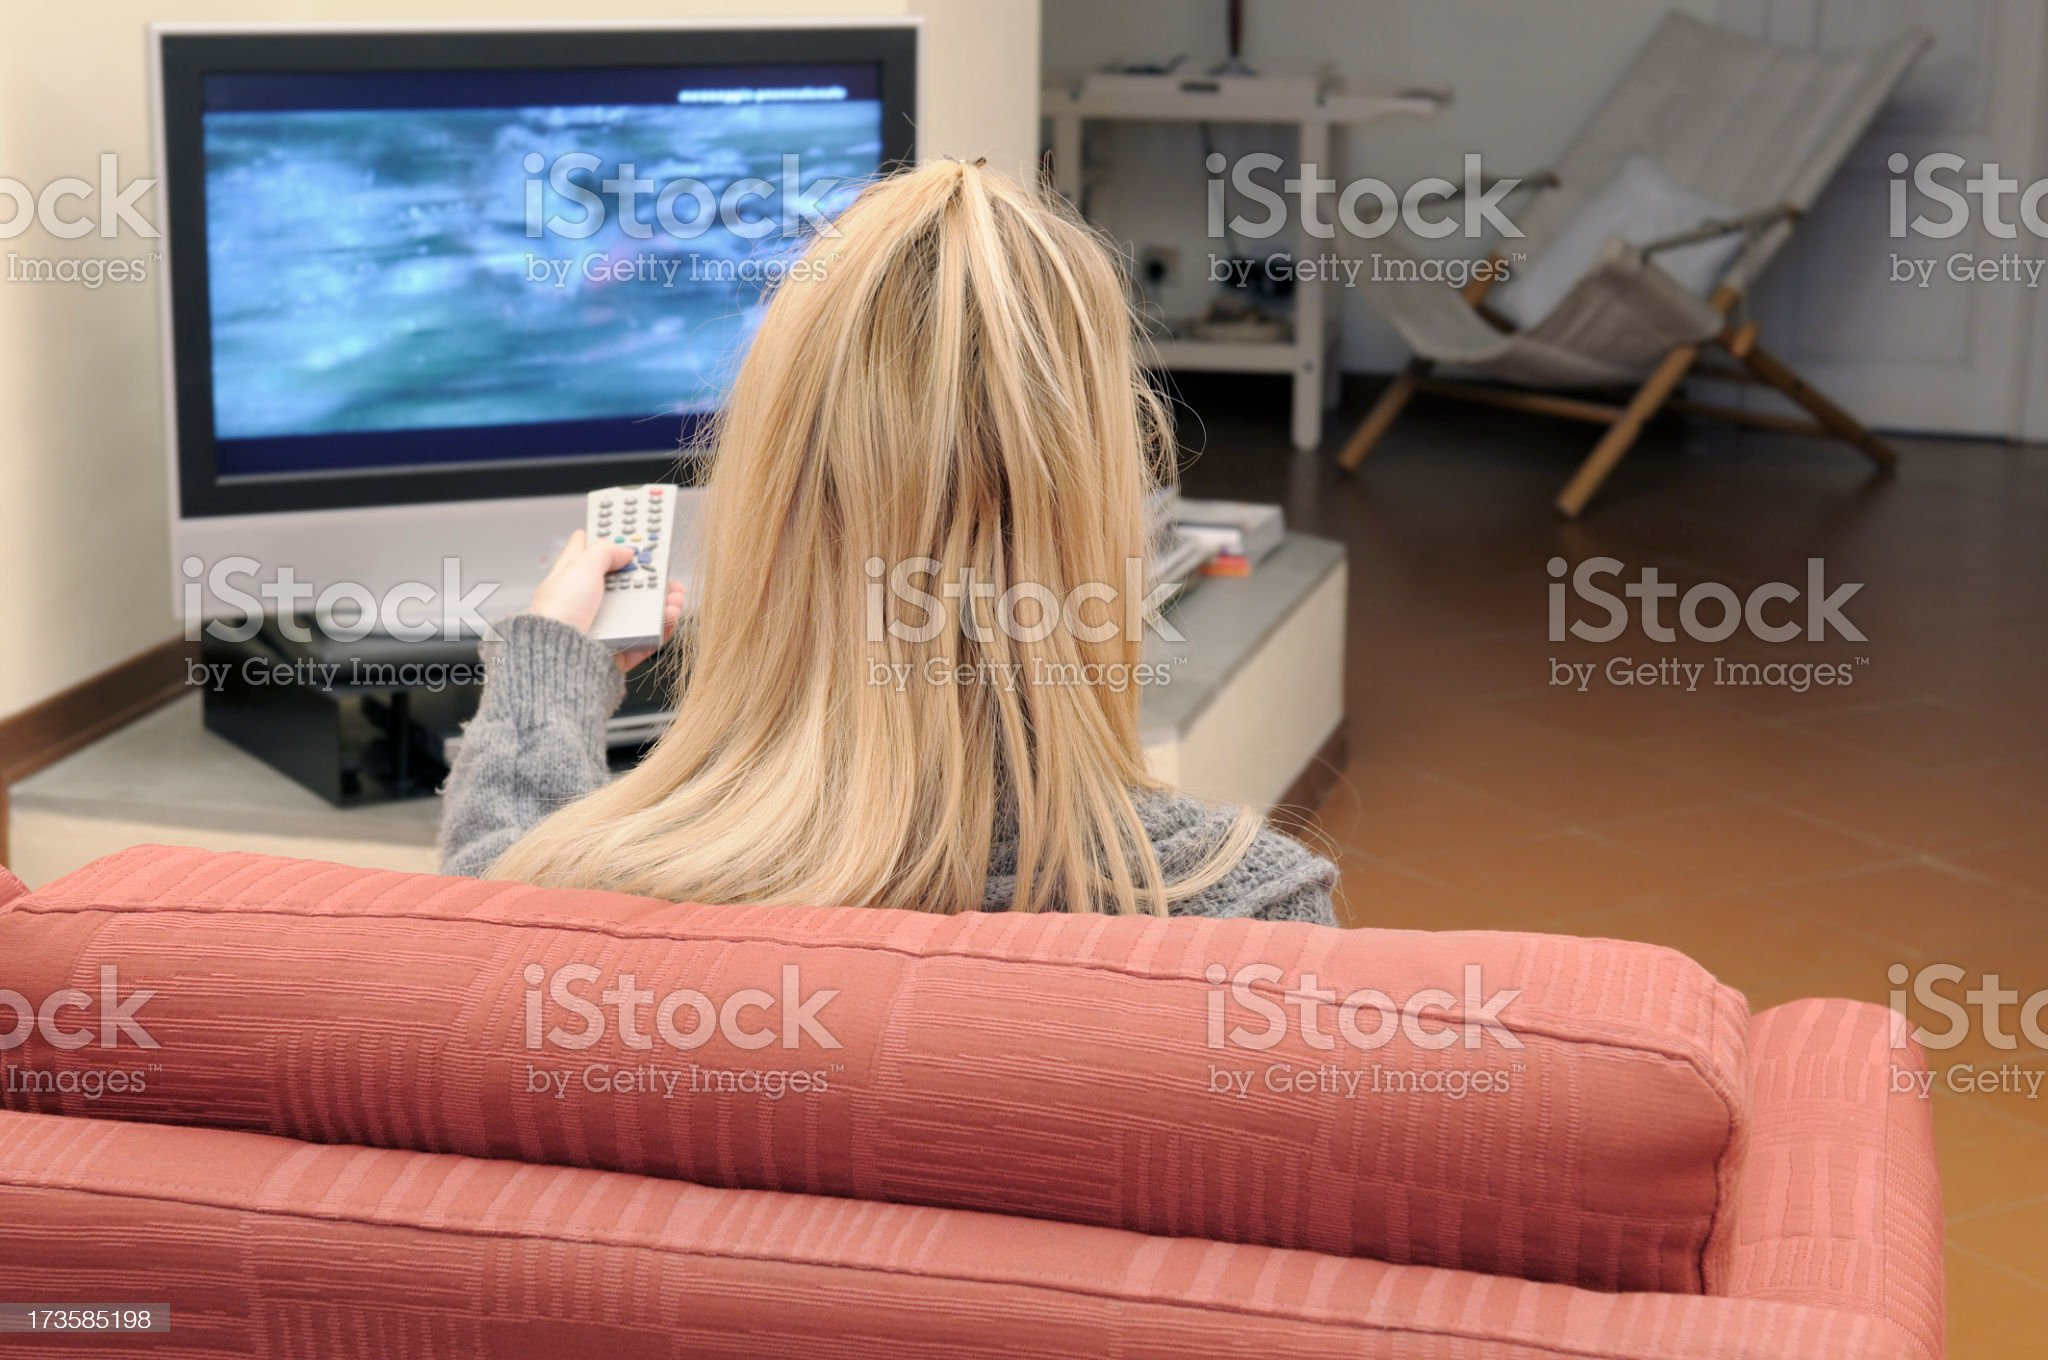 Blonde Girl Watching Television on Sofa royalty-free stock photo